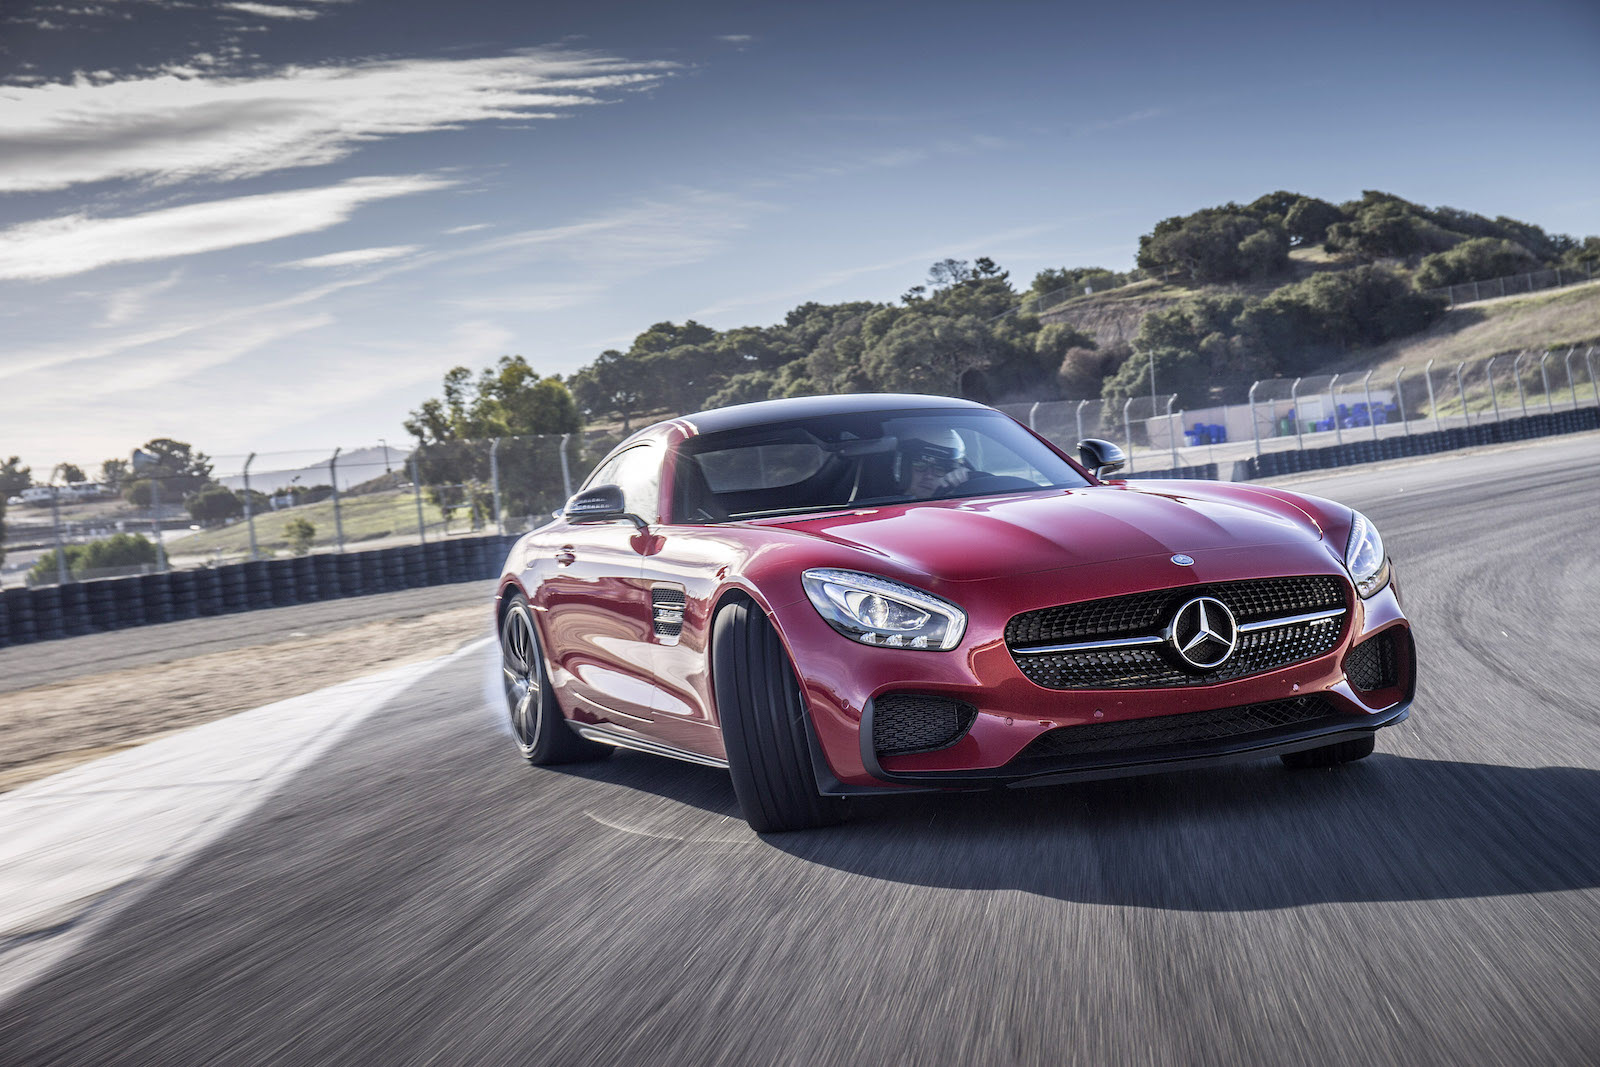 2016 Mercedes-Benz AMG GT S first drive review